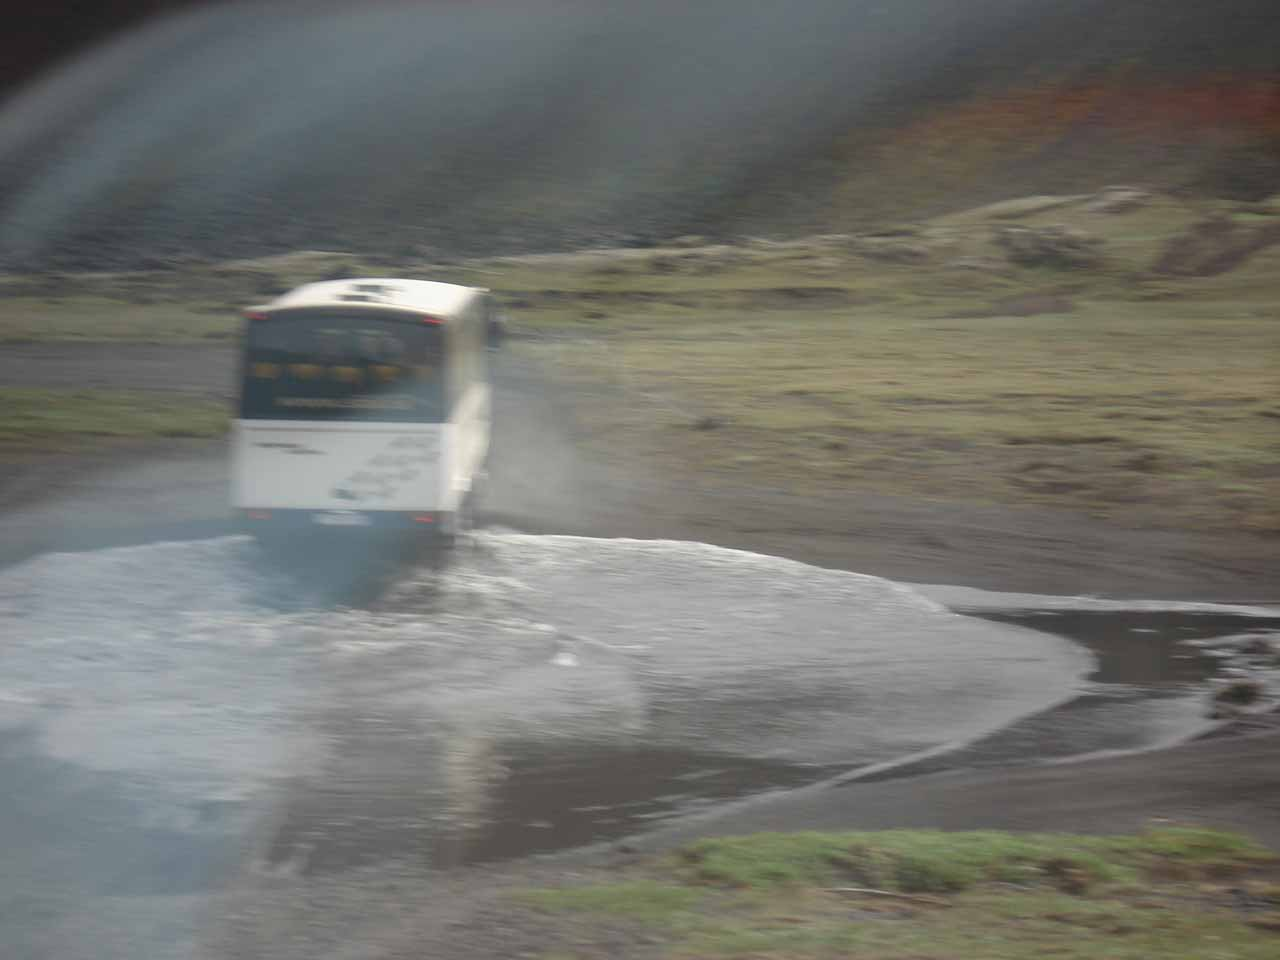 I kept this blurry shot just to show you that these buses are capable of completing an unbridged river crossing